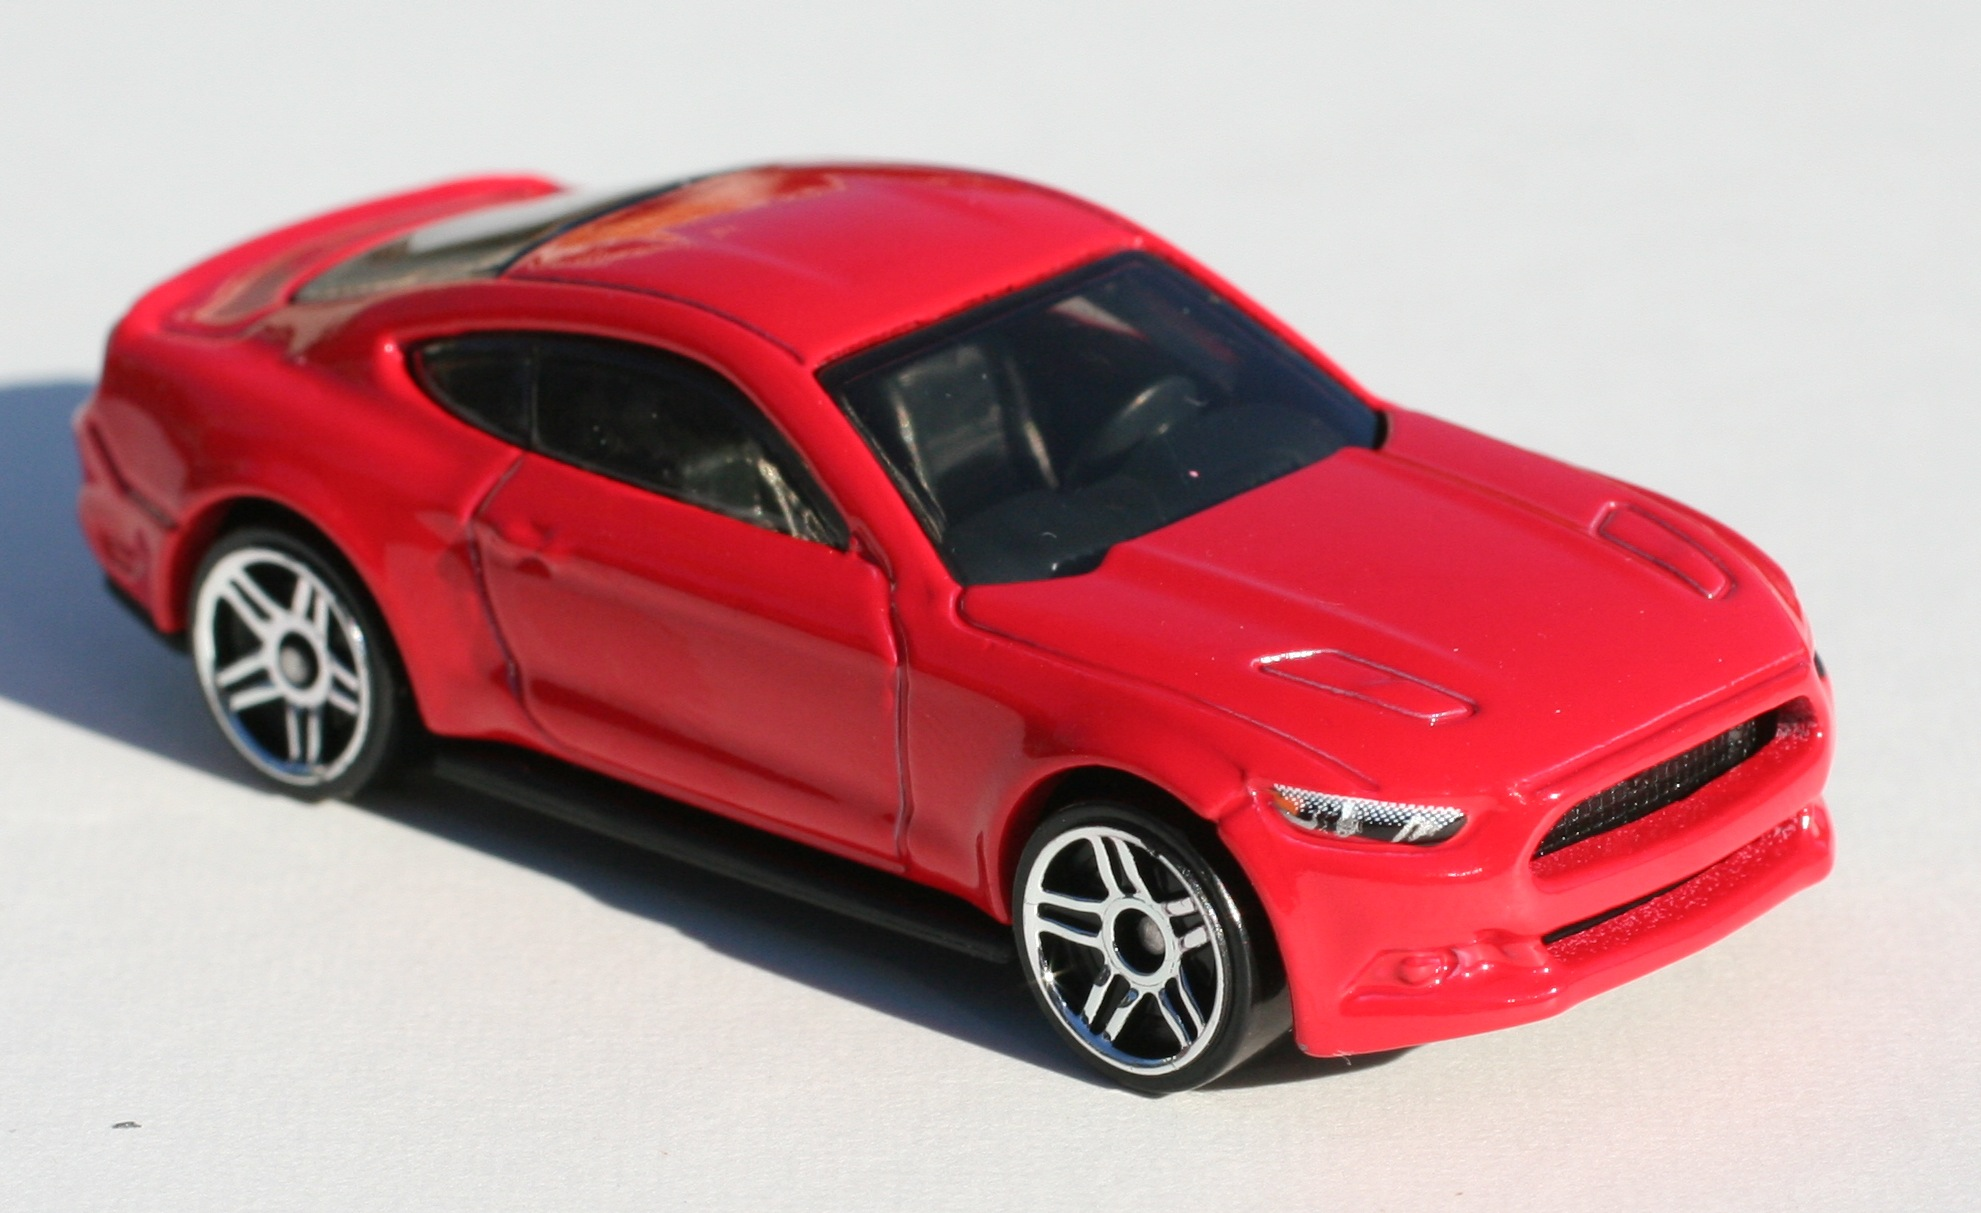 2015 Ford Mustang GT | Hot Wheels Wiki | FANDOM powered by ...